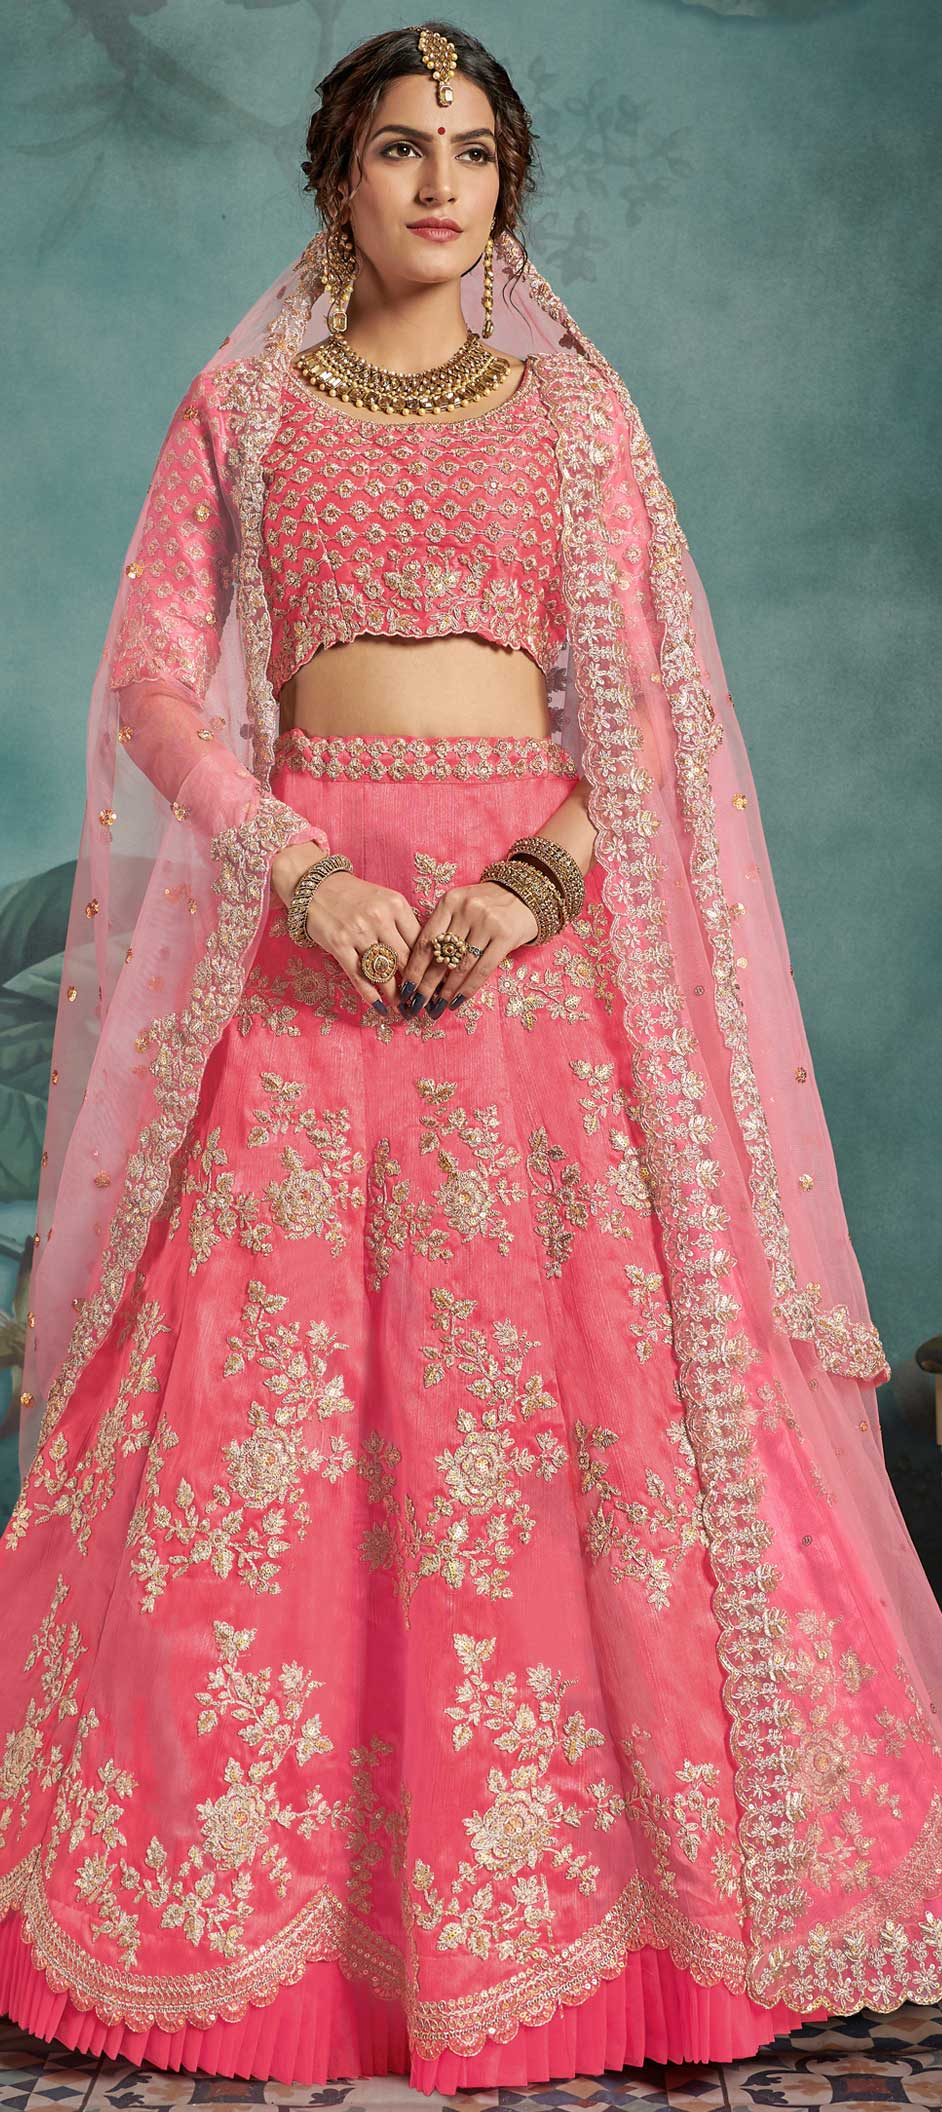 Beautiful bridal lehengas for brides who are on a budget